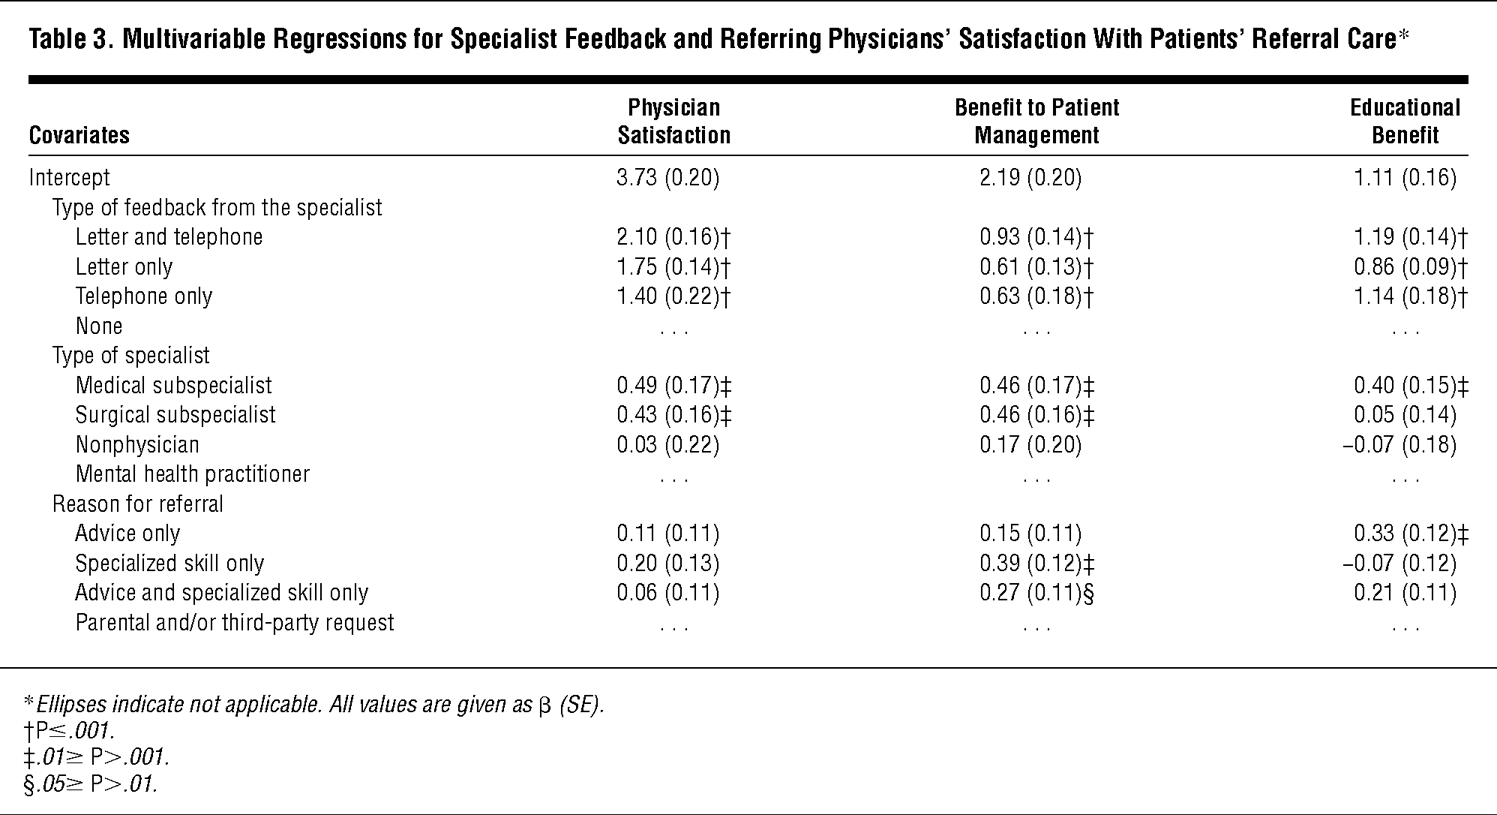 Coordination of Specialty Referrals and Physician